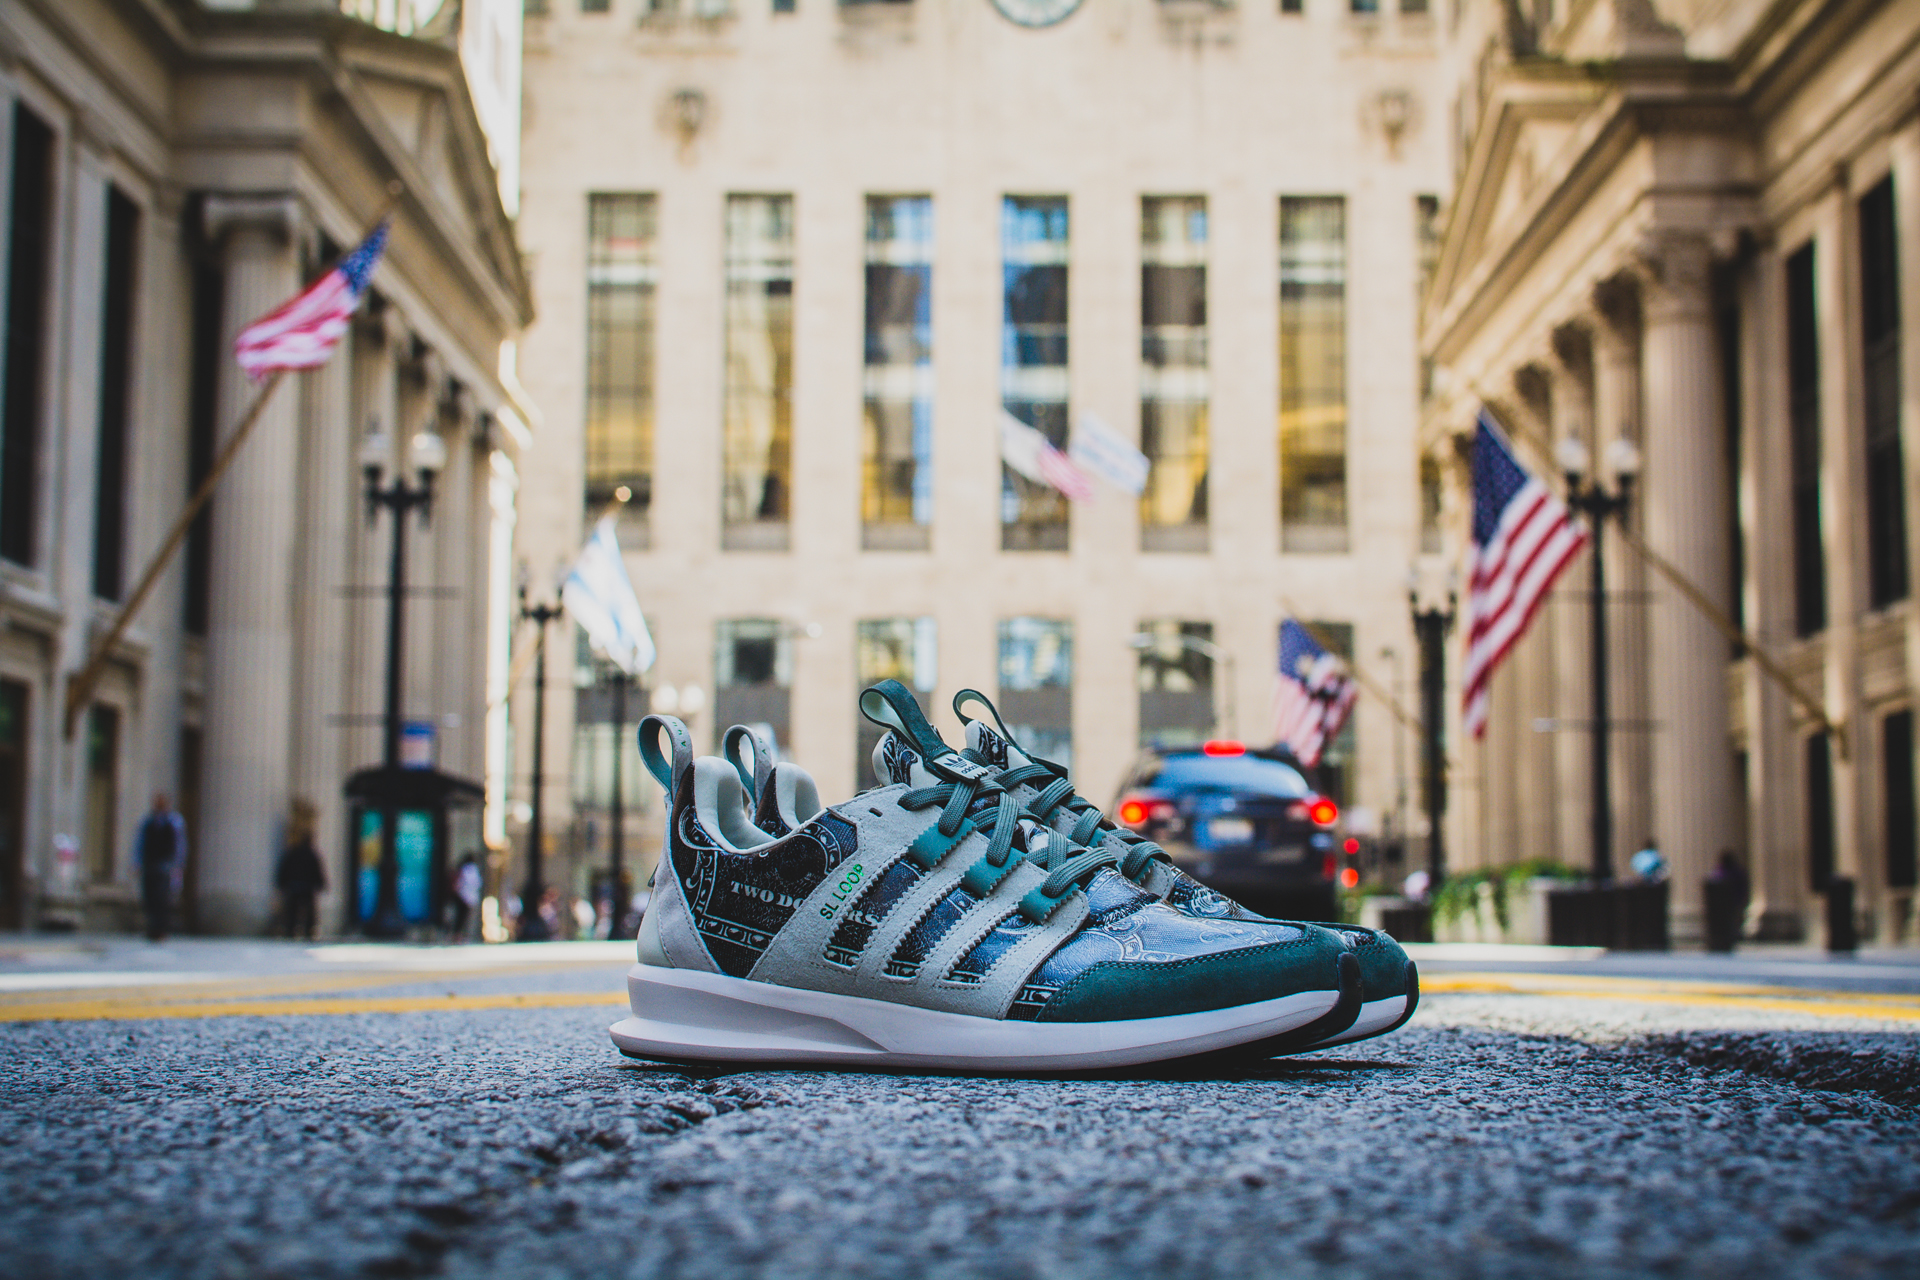 13b81c523a5cd MNHQ  Wish ATL x Adidas SL Loop